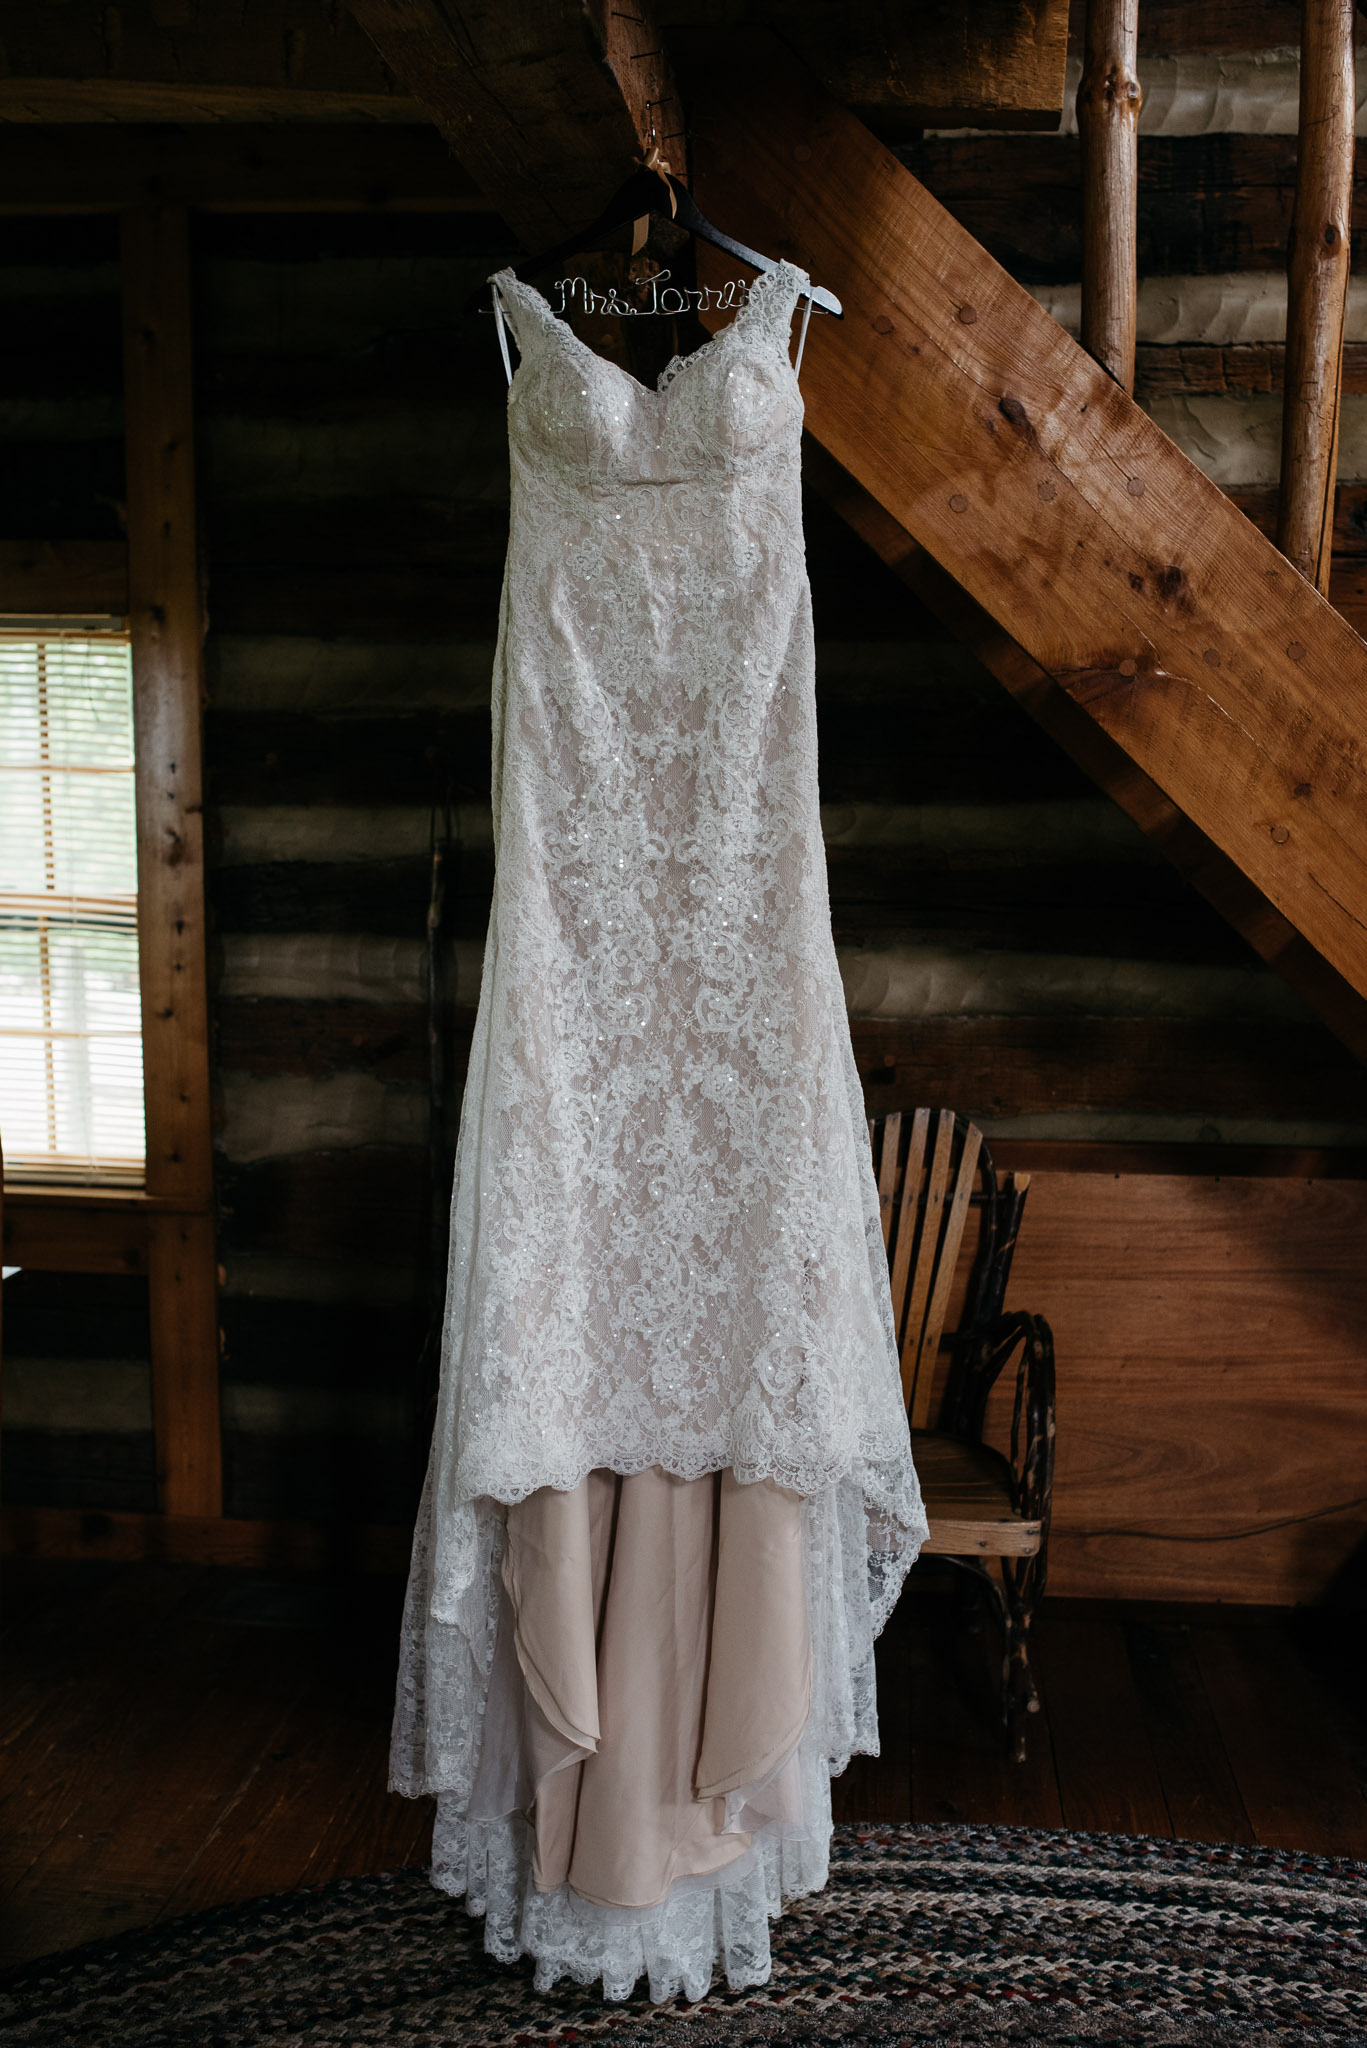 Somerset PA barn wedding, Event Barn at Highland Farms, Details-2950.jpg